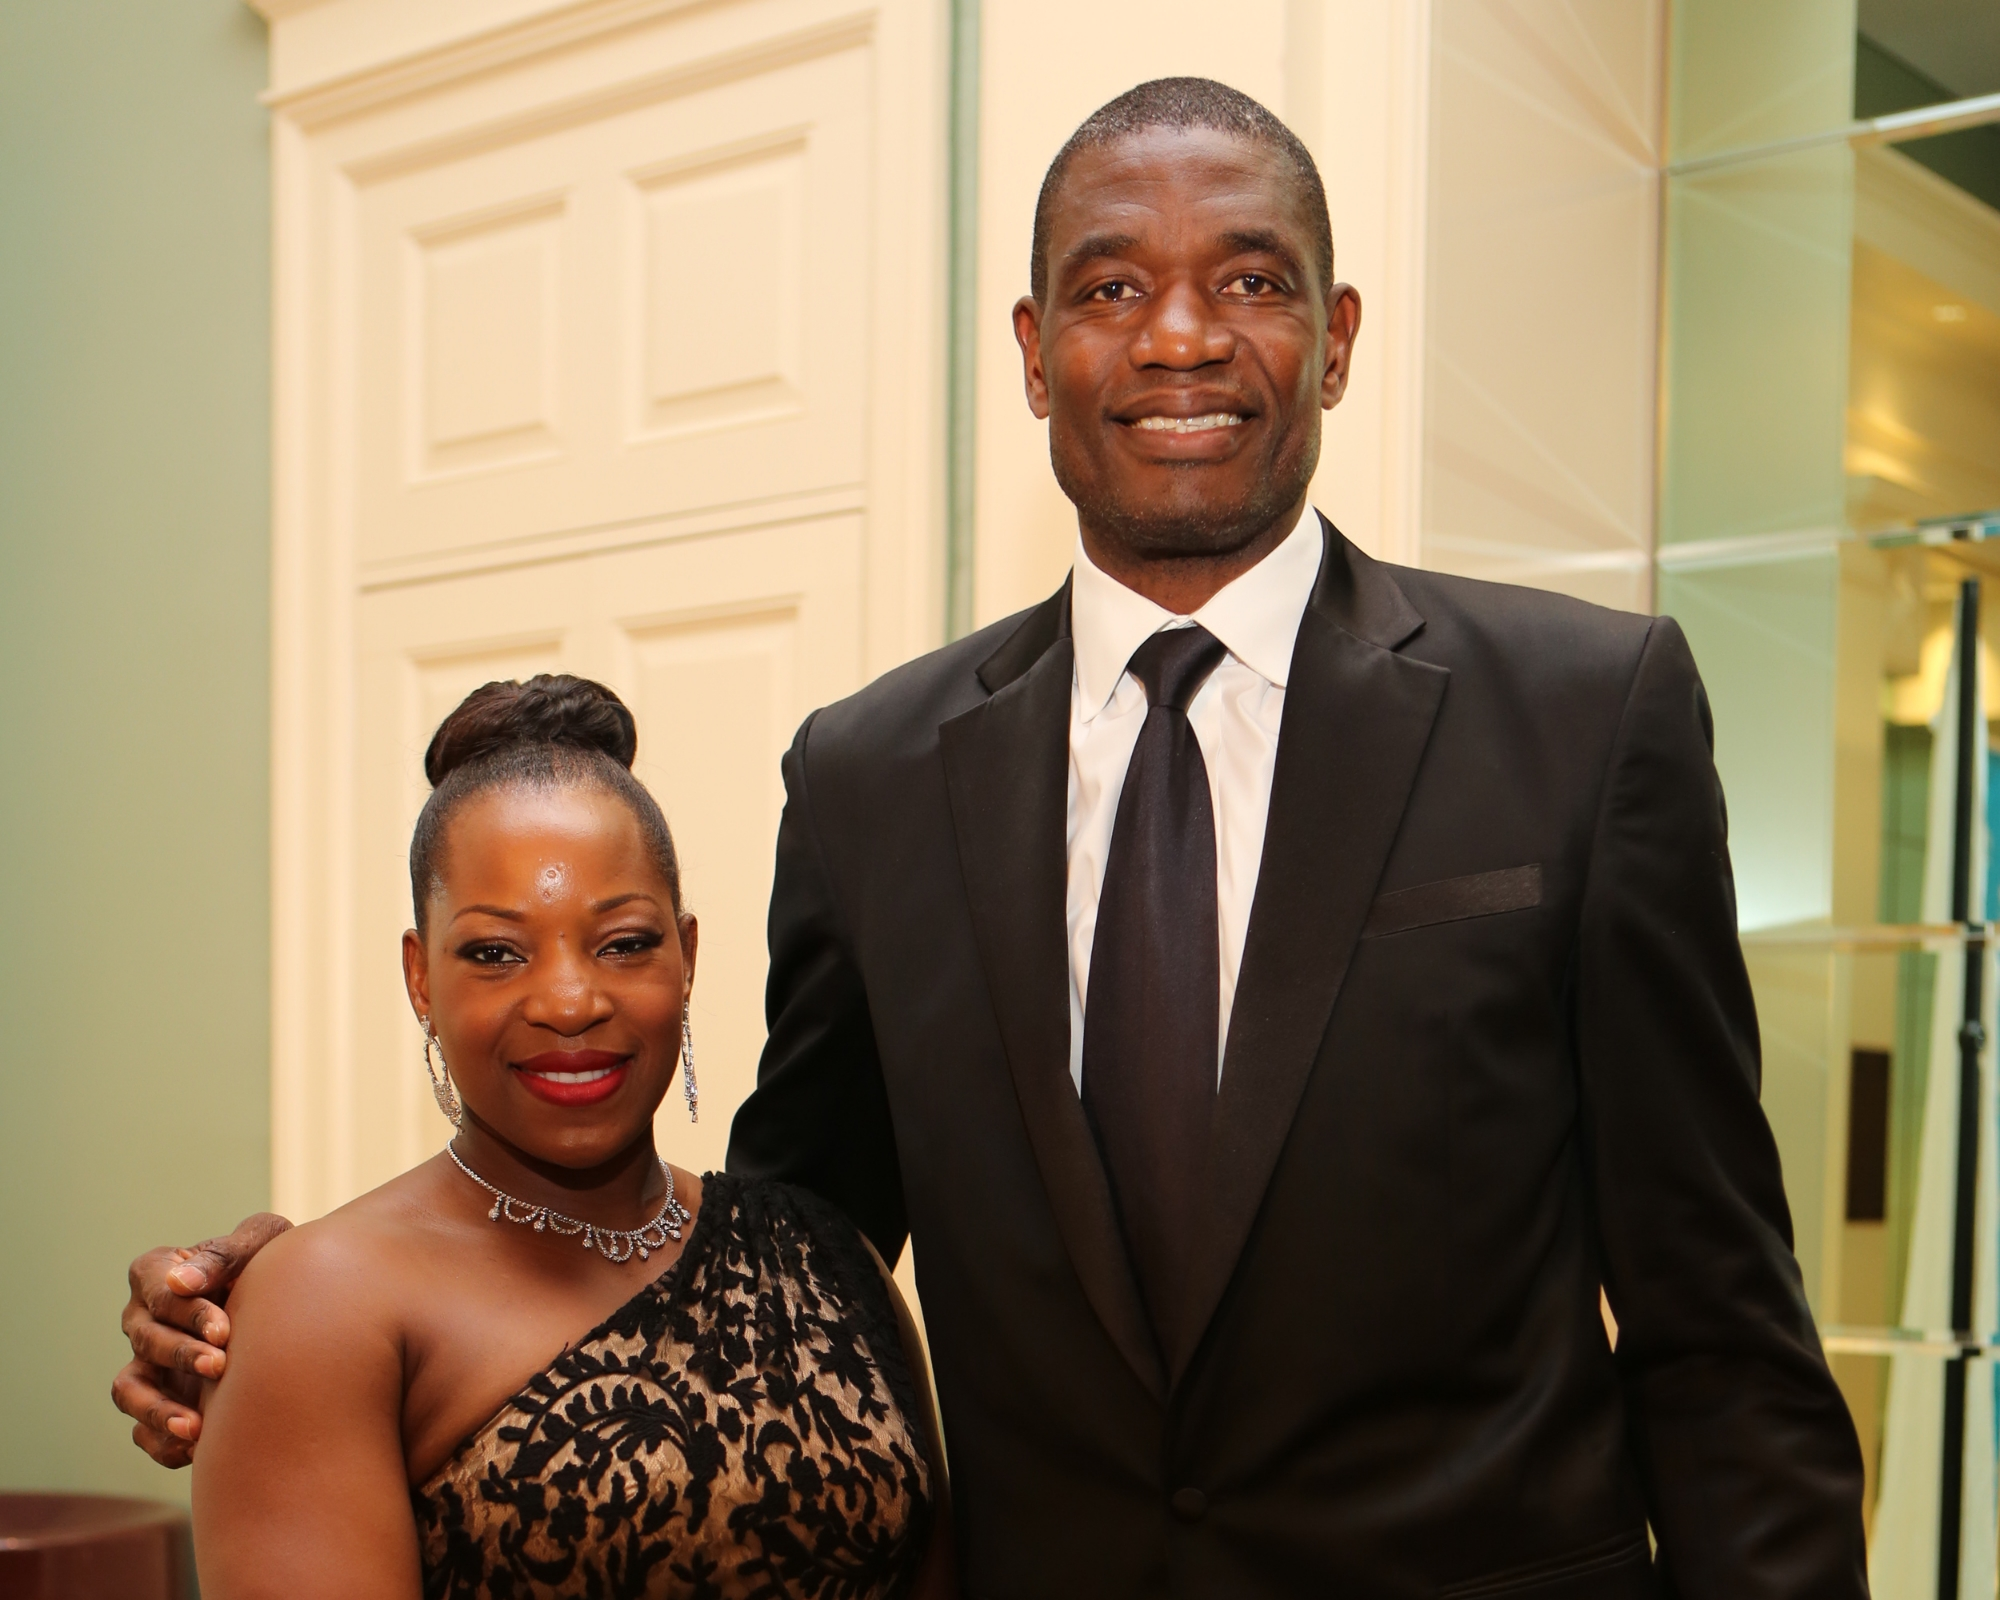 U.S. Fund for UNICEF National Board Member Dikembe Mutombo and his wife Rose and attend The 1st Annual UNICEF Audrey Hepburn® Society Ball at the Wortham Center on September 6, 2013 in Houston, Texas. (Photo by Bob Levey/Getty Images for UNICEF)